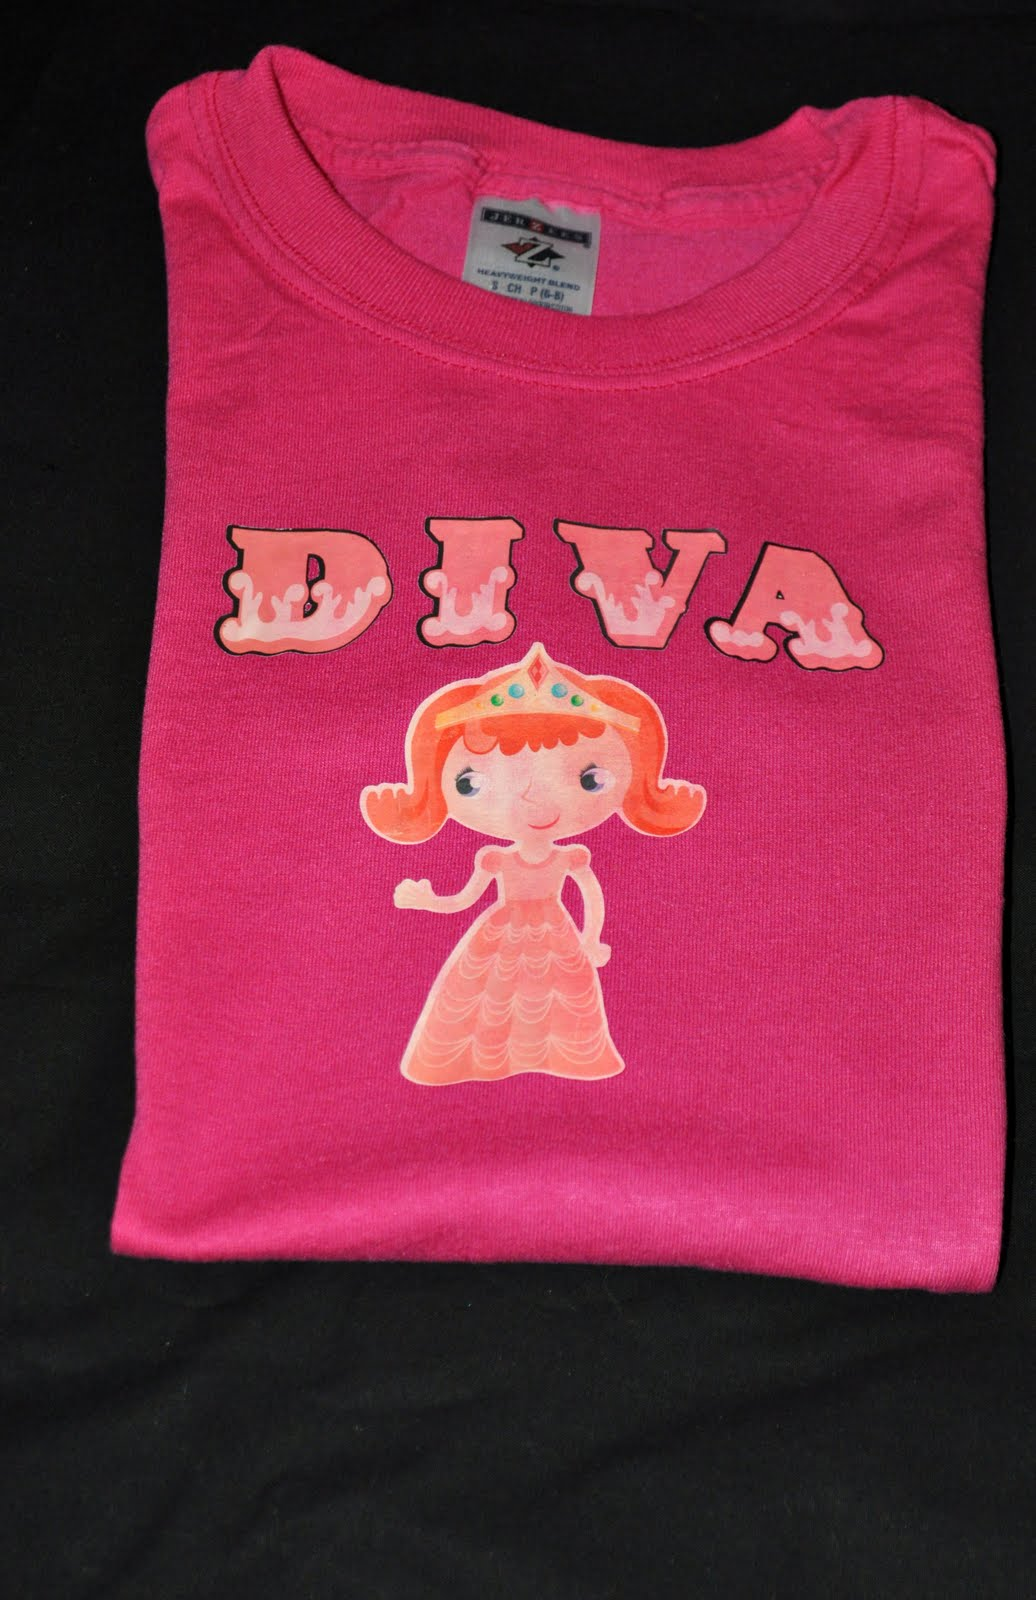 photograph relating to Printable Iron on Vinyl called Vinyl For Cricut Happenings: T-Blouse produced with Printable